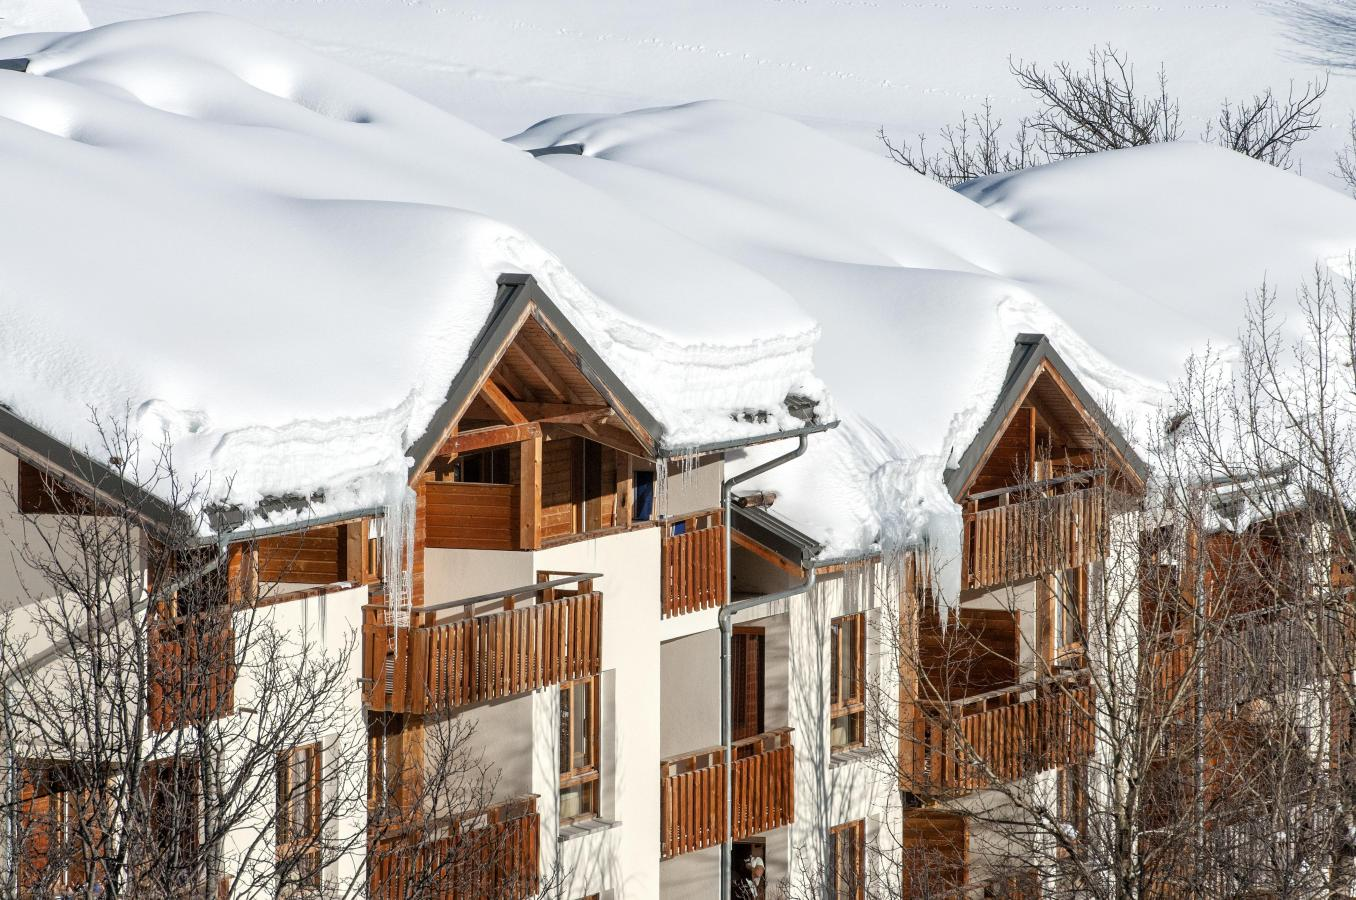 RESIDENCE LE BALCON DES NEIGES